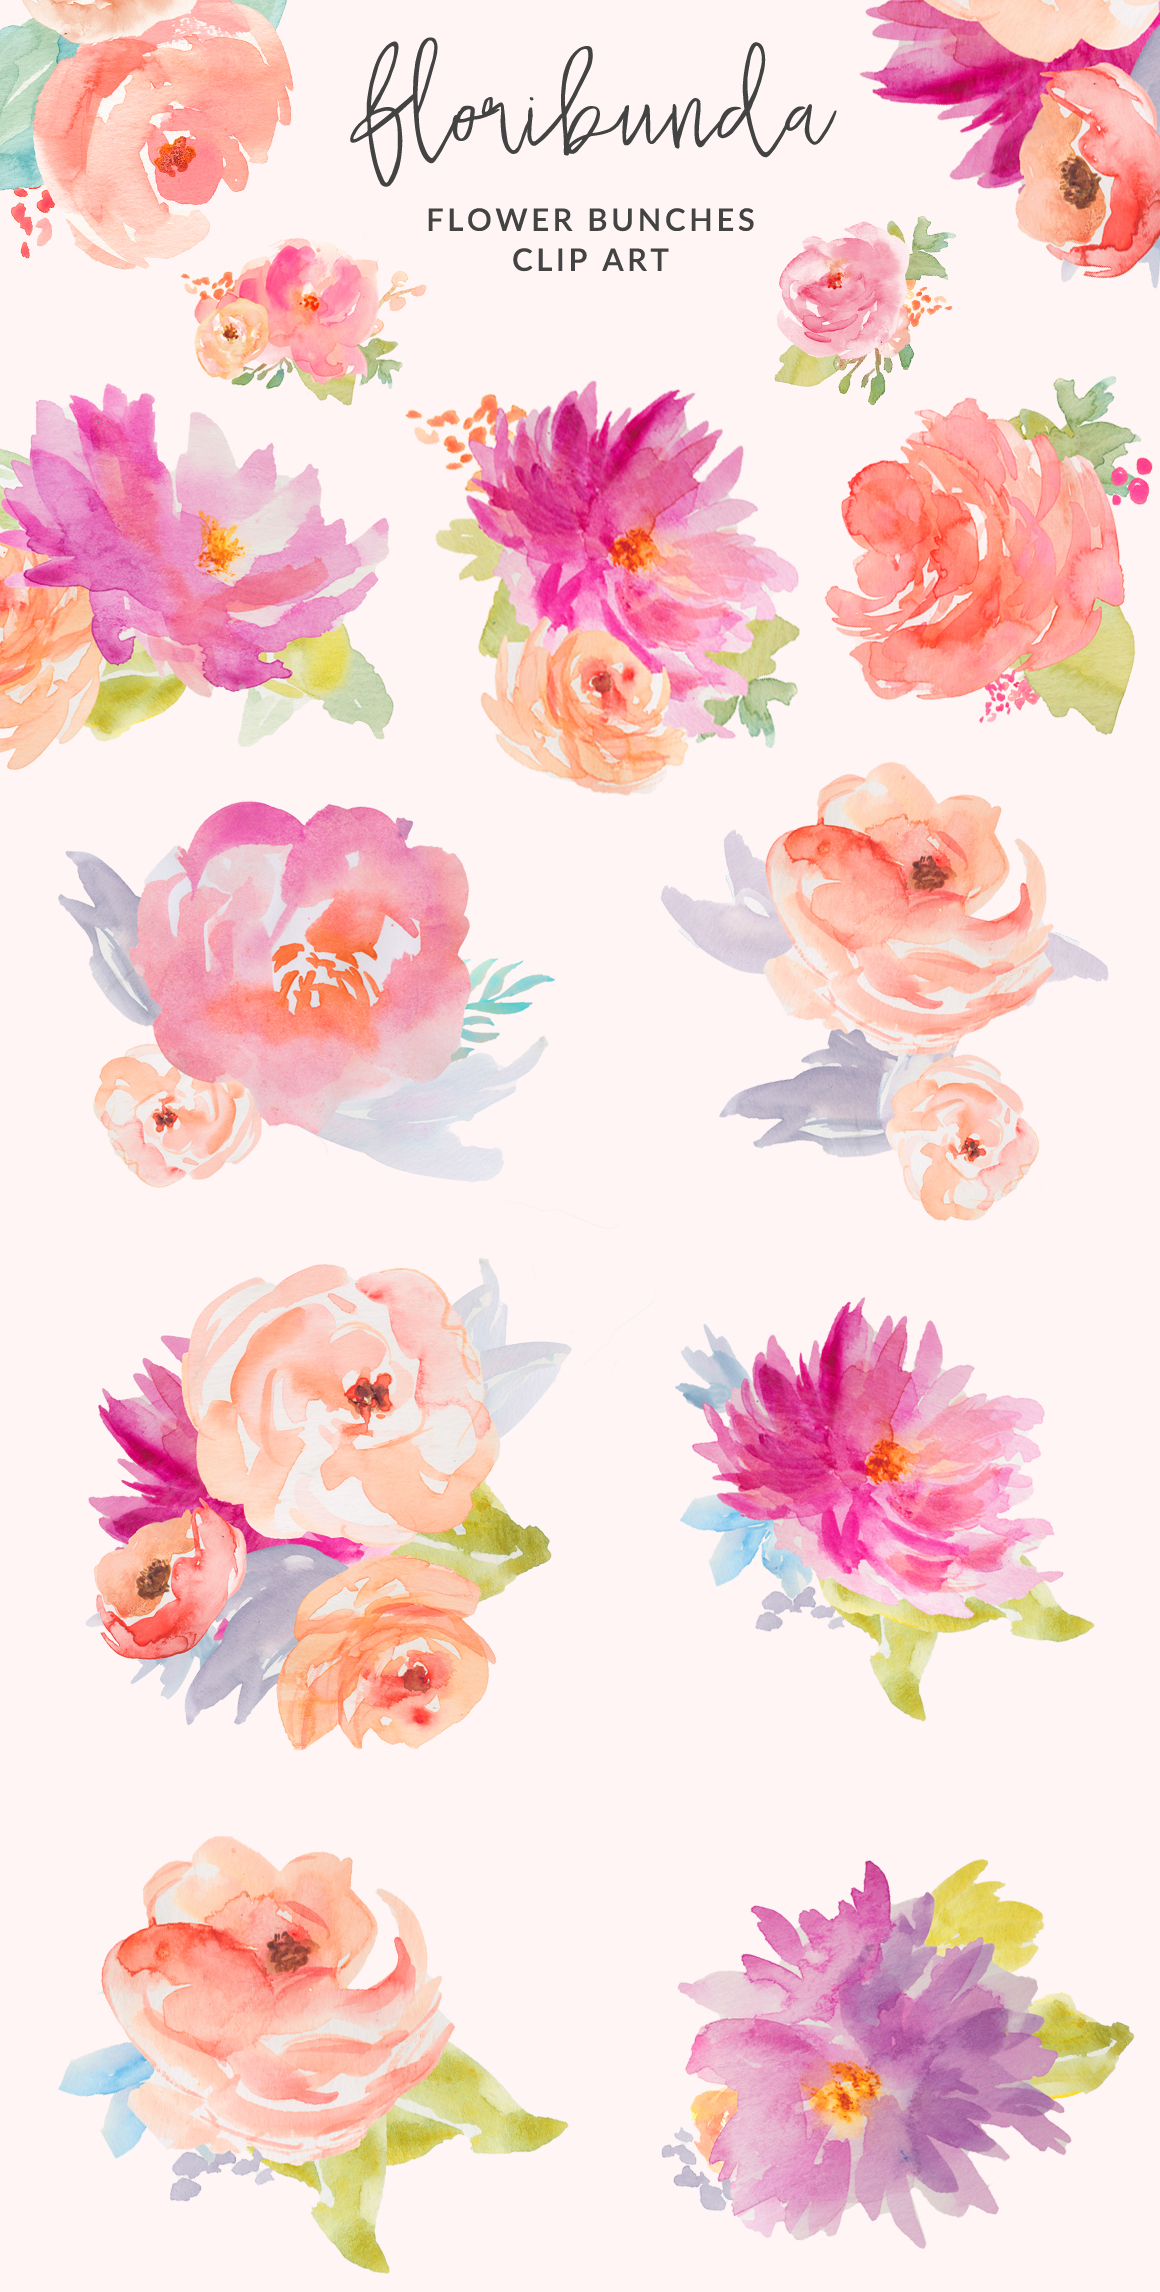 Watercolor Floral Clip Art Design. Watercolor Flower Illustration.